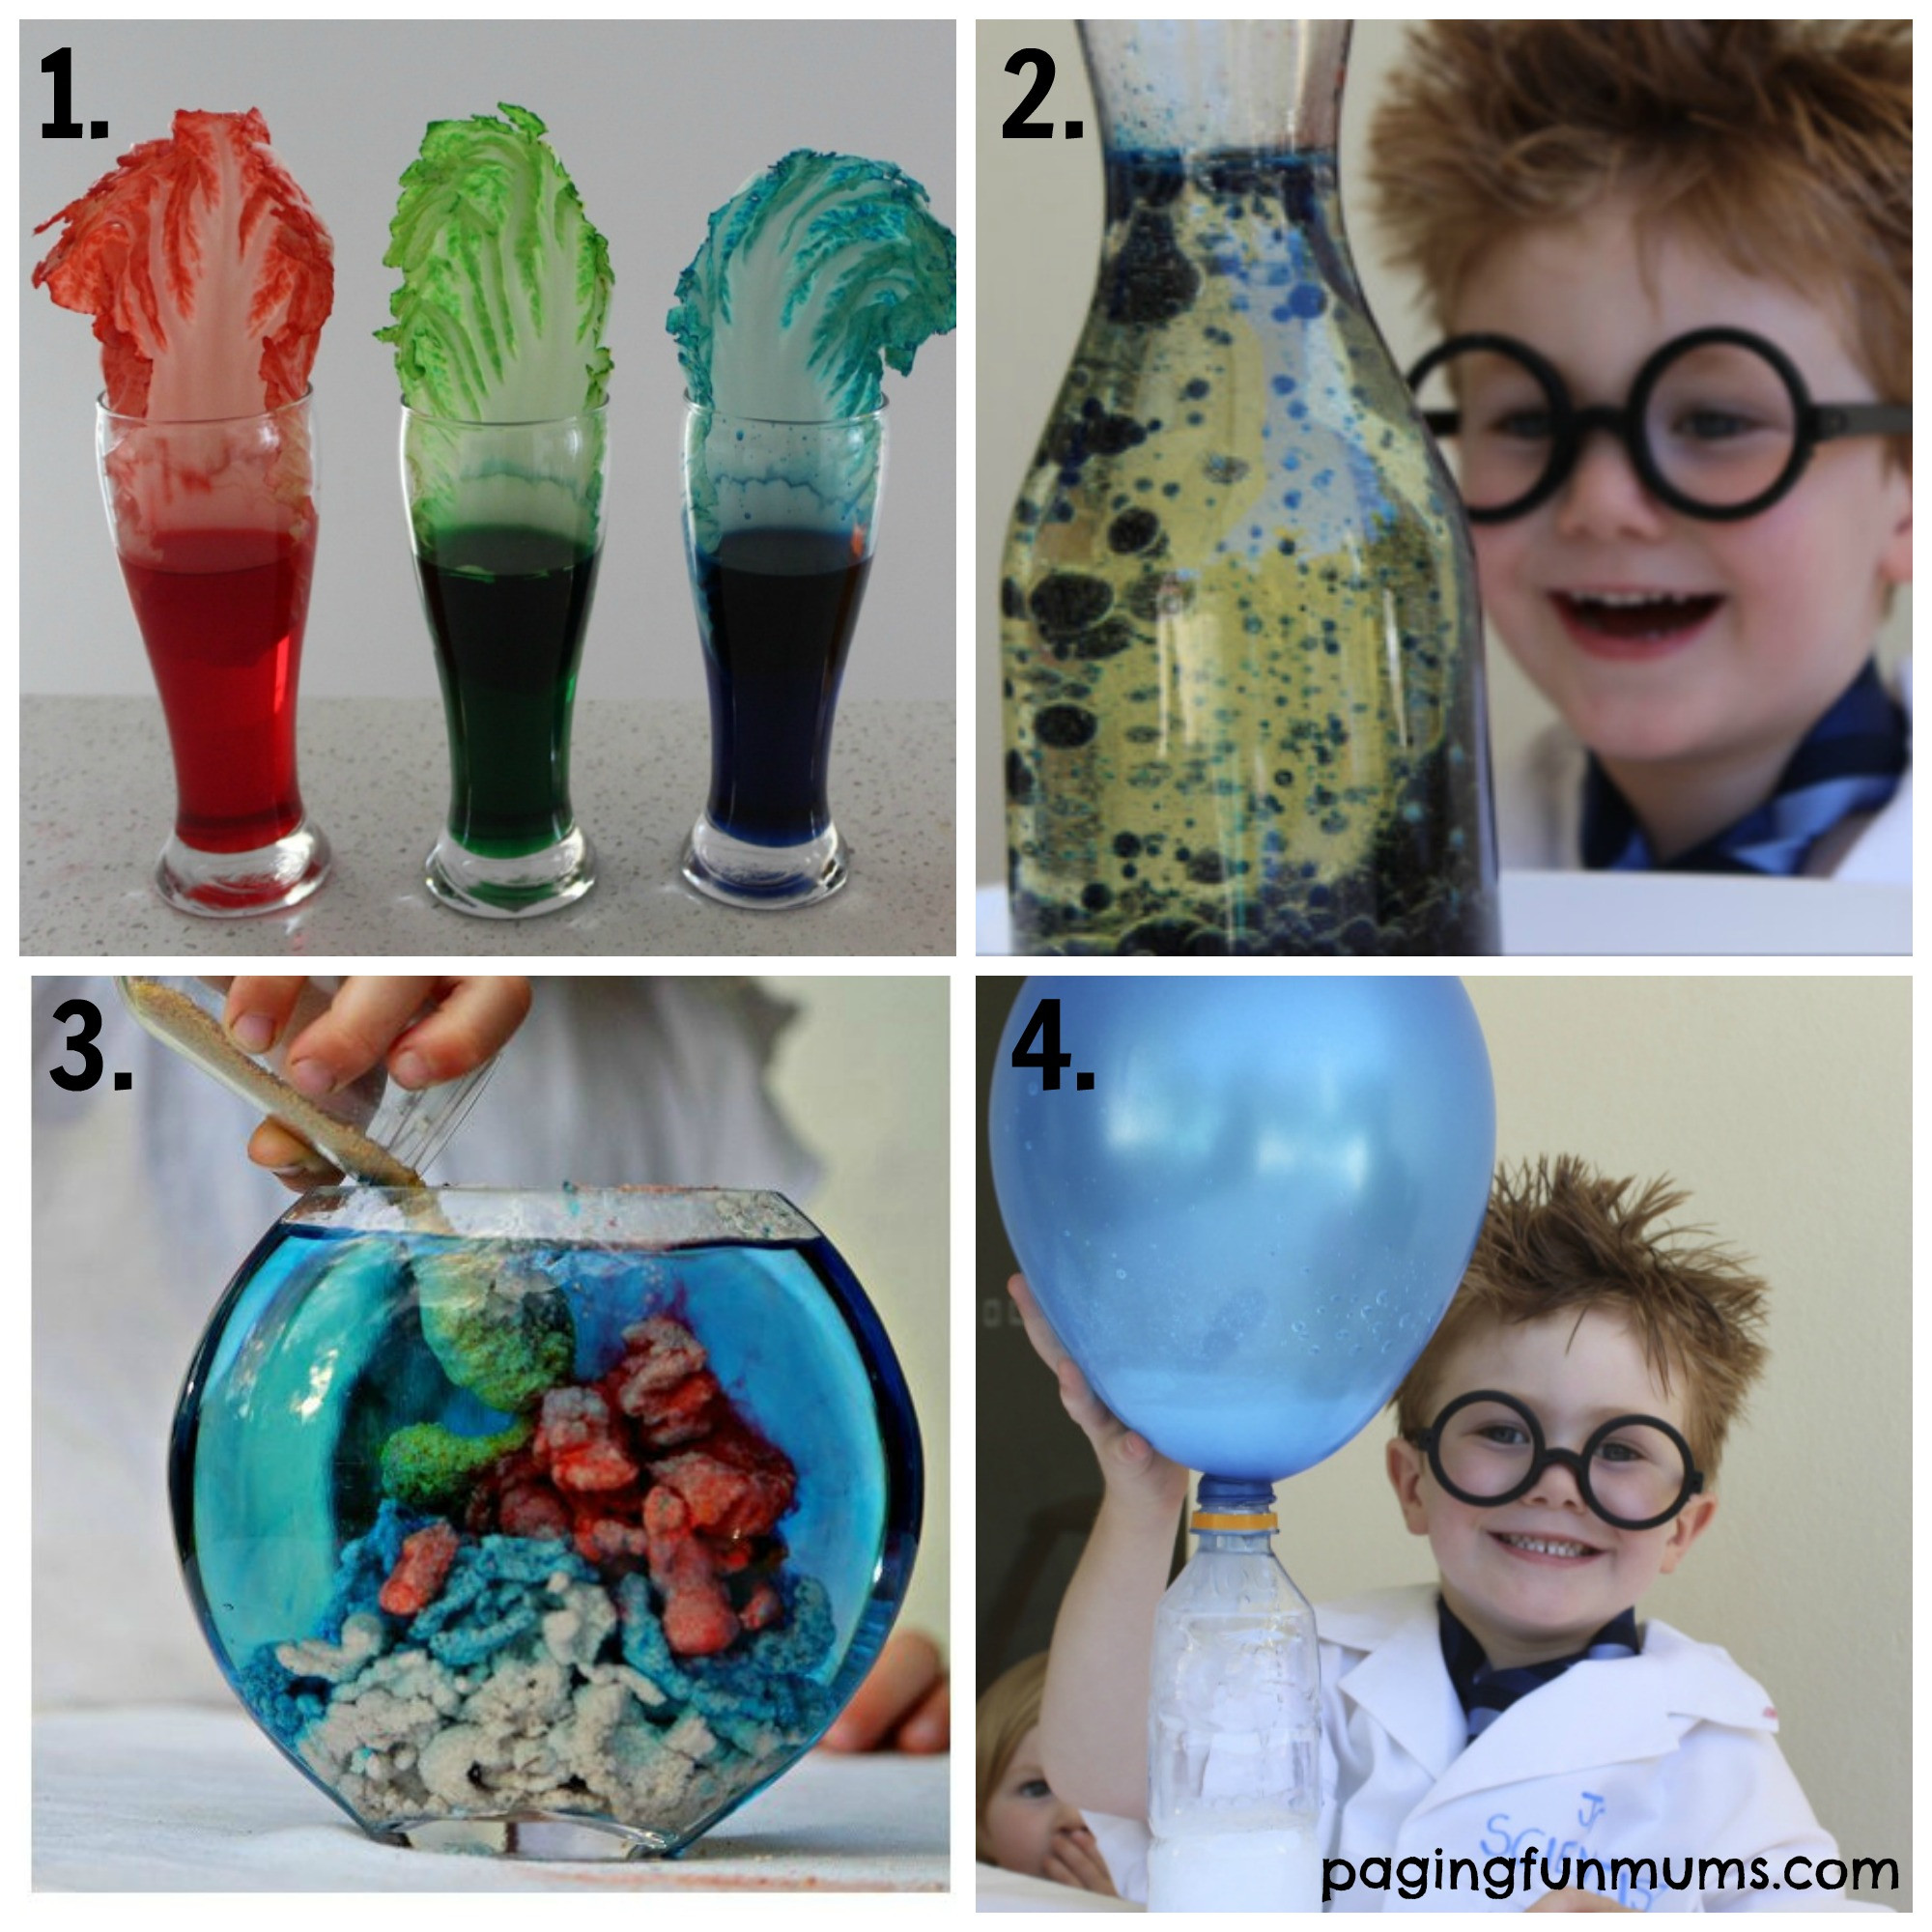 Fun Kids Projects  21 Fun Science Experiments for Kids 1 4 Paging Fun Mums